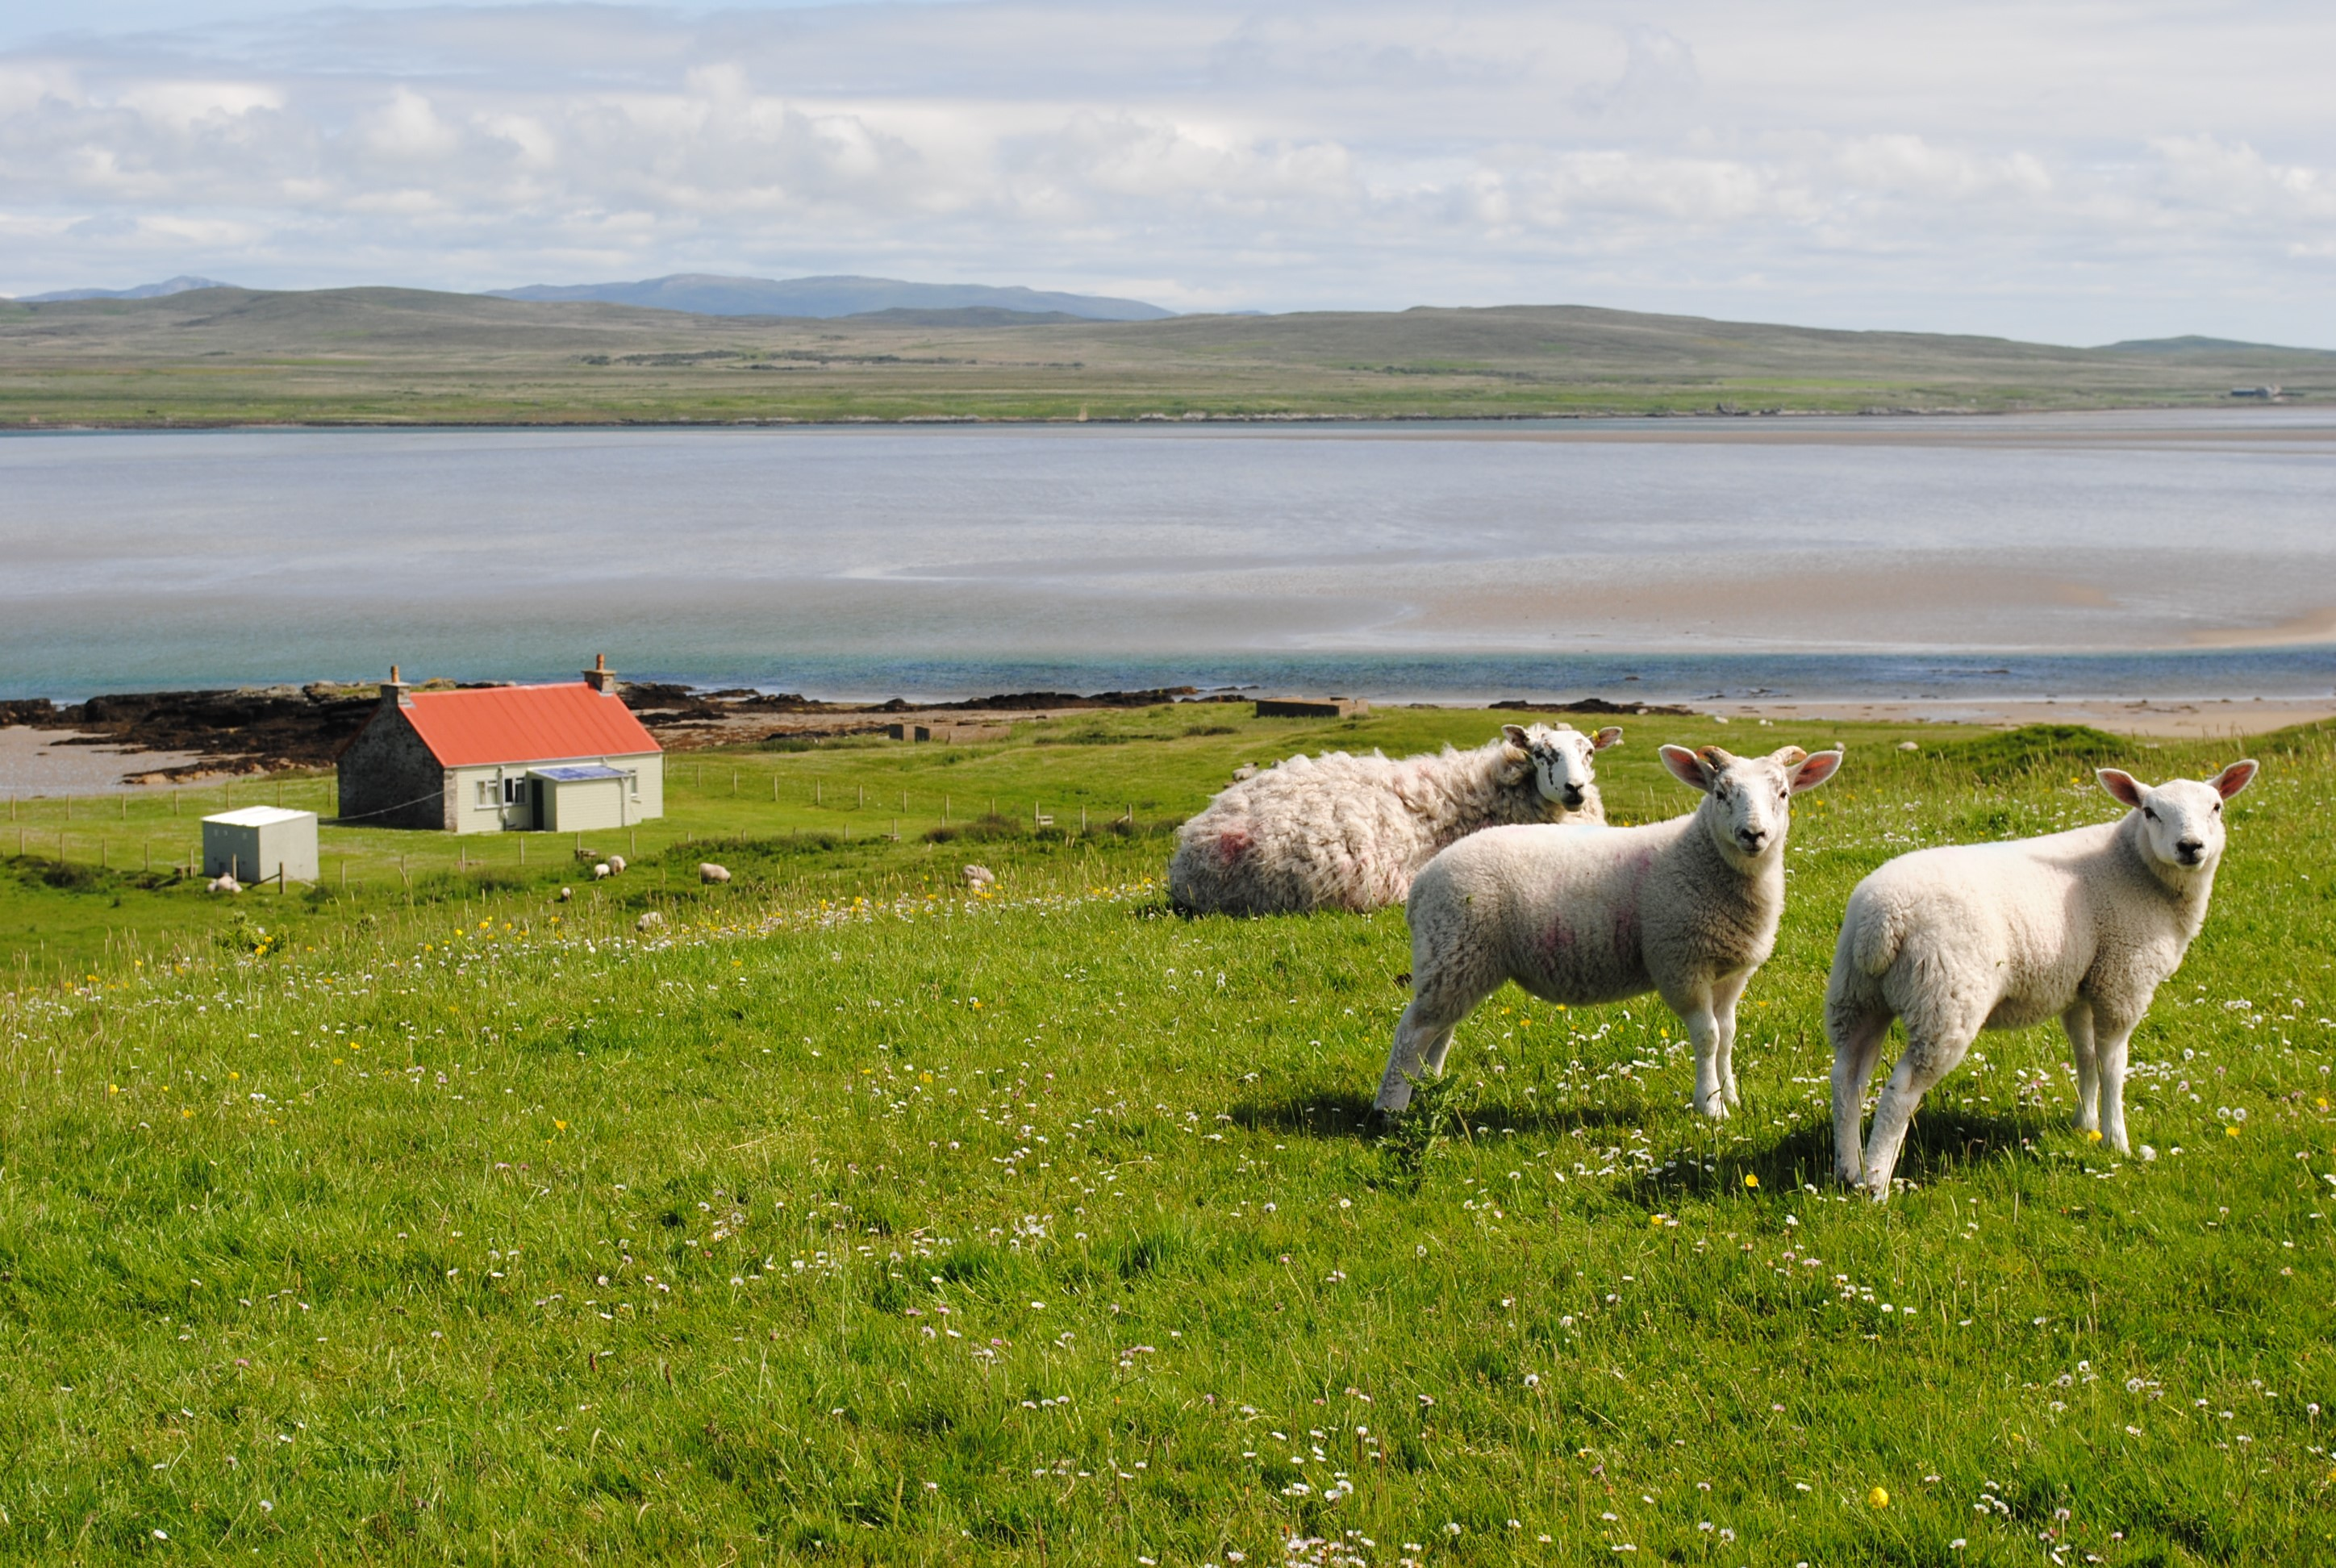 TRAVEL: Isle of Islay, Queen of the Hebrides, Scotland